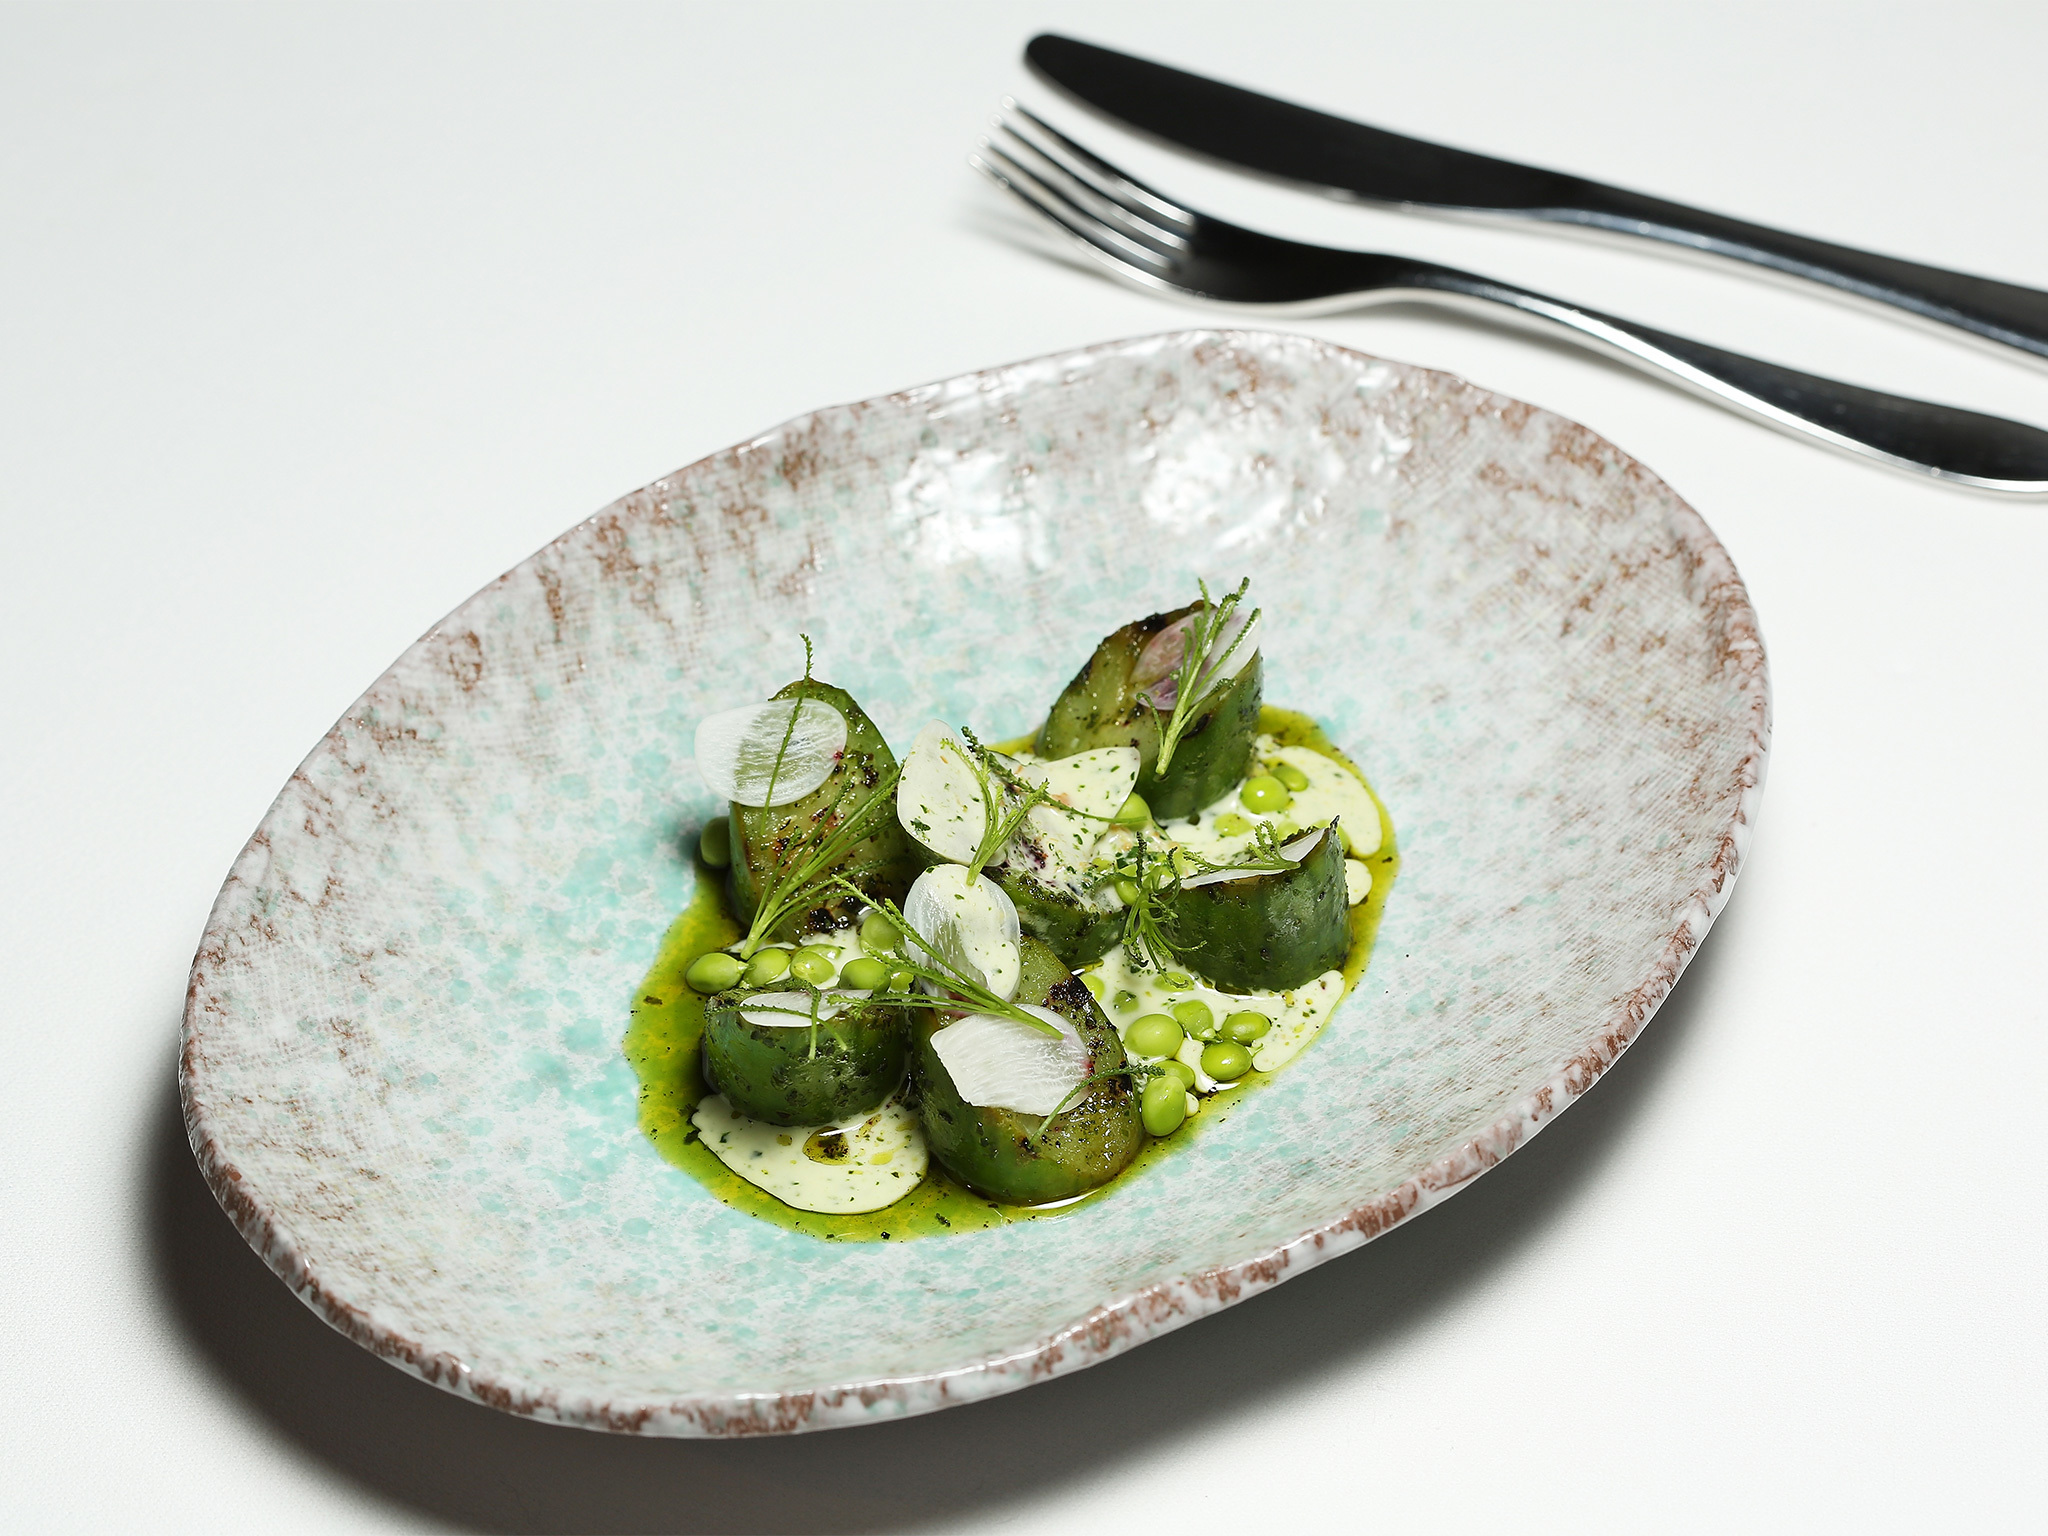 Grilled cucumber spears with a pea reduction